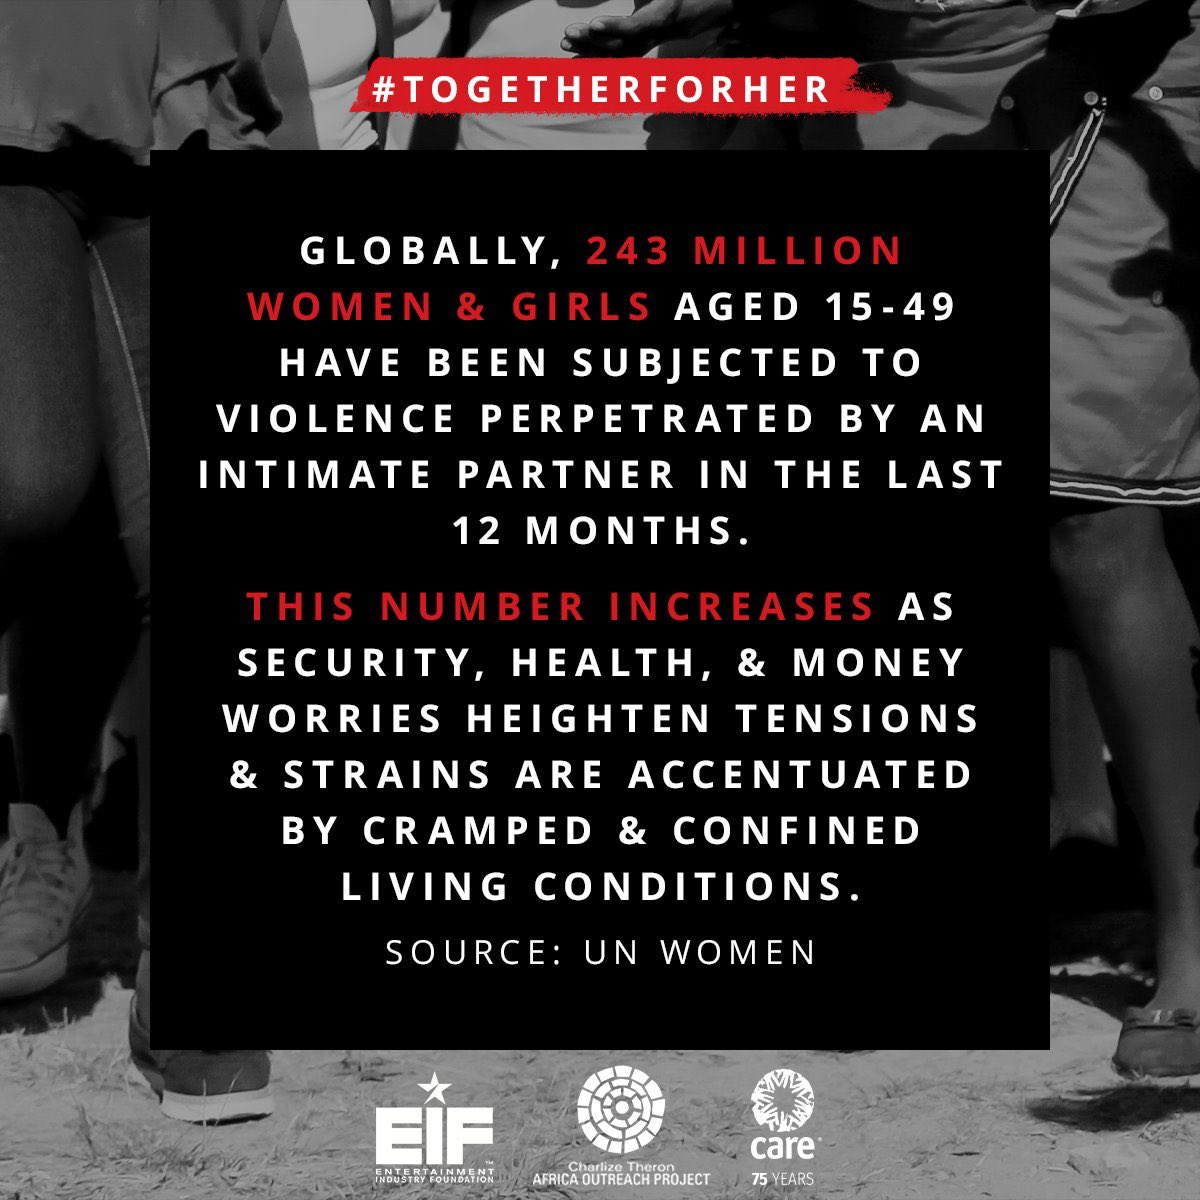 1/3 women will experience gender-based violence. #COVID19 is exacerbating this––so I'm standing #TogetherForHer with @CharlizeAfrica, @CTAOP, @CARE & @EIFoundation in spotlighting & donating to interventions to keep women & girls safe from abuse. Join us: buff.ly/2SGduD6